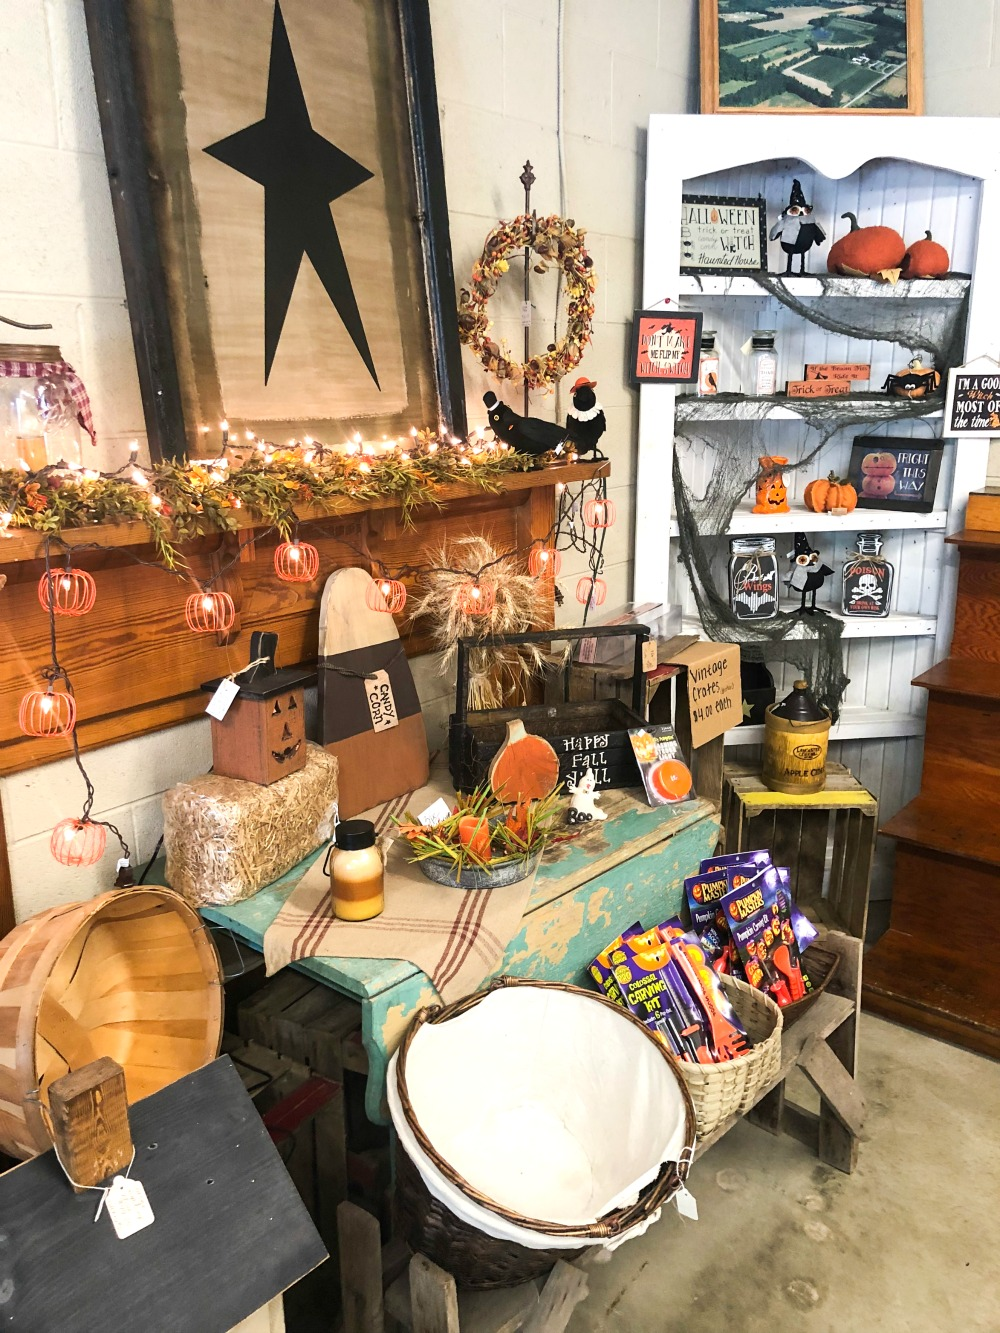 Shopping for fall decor at A&M Orchard #applepicking #fallactivities